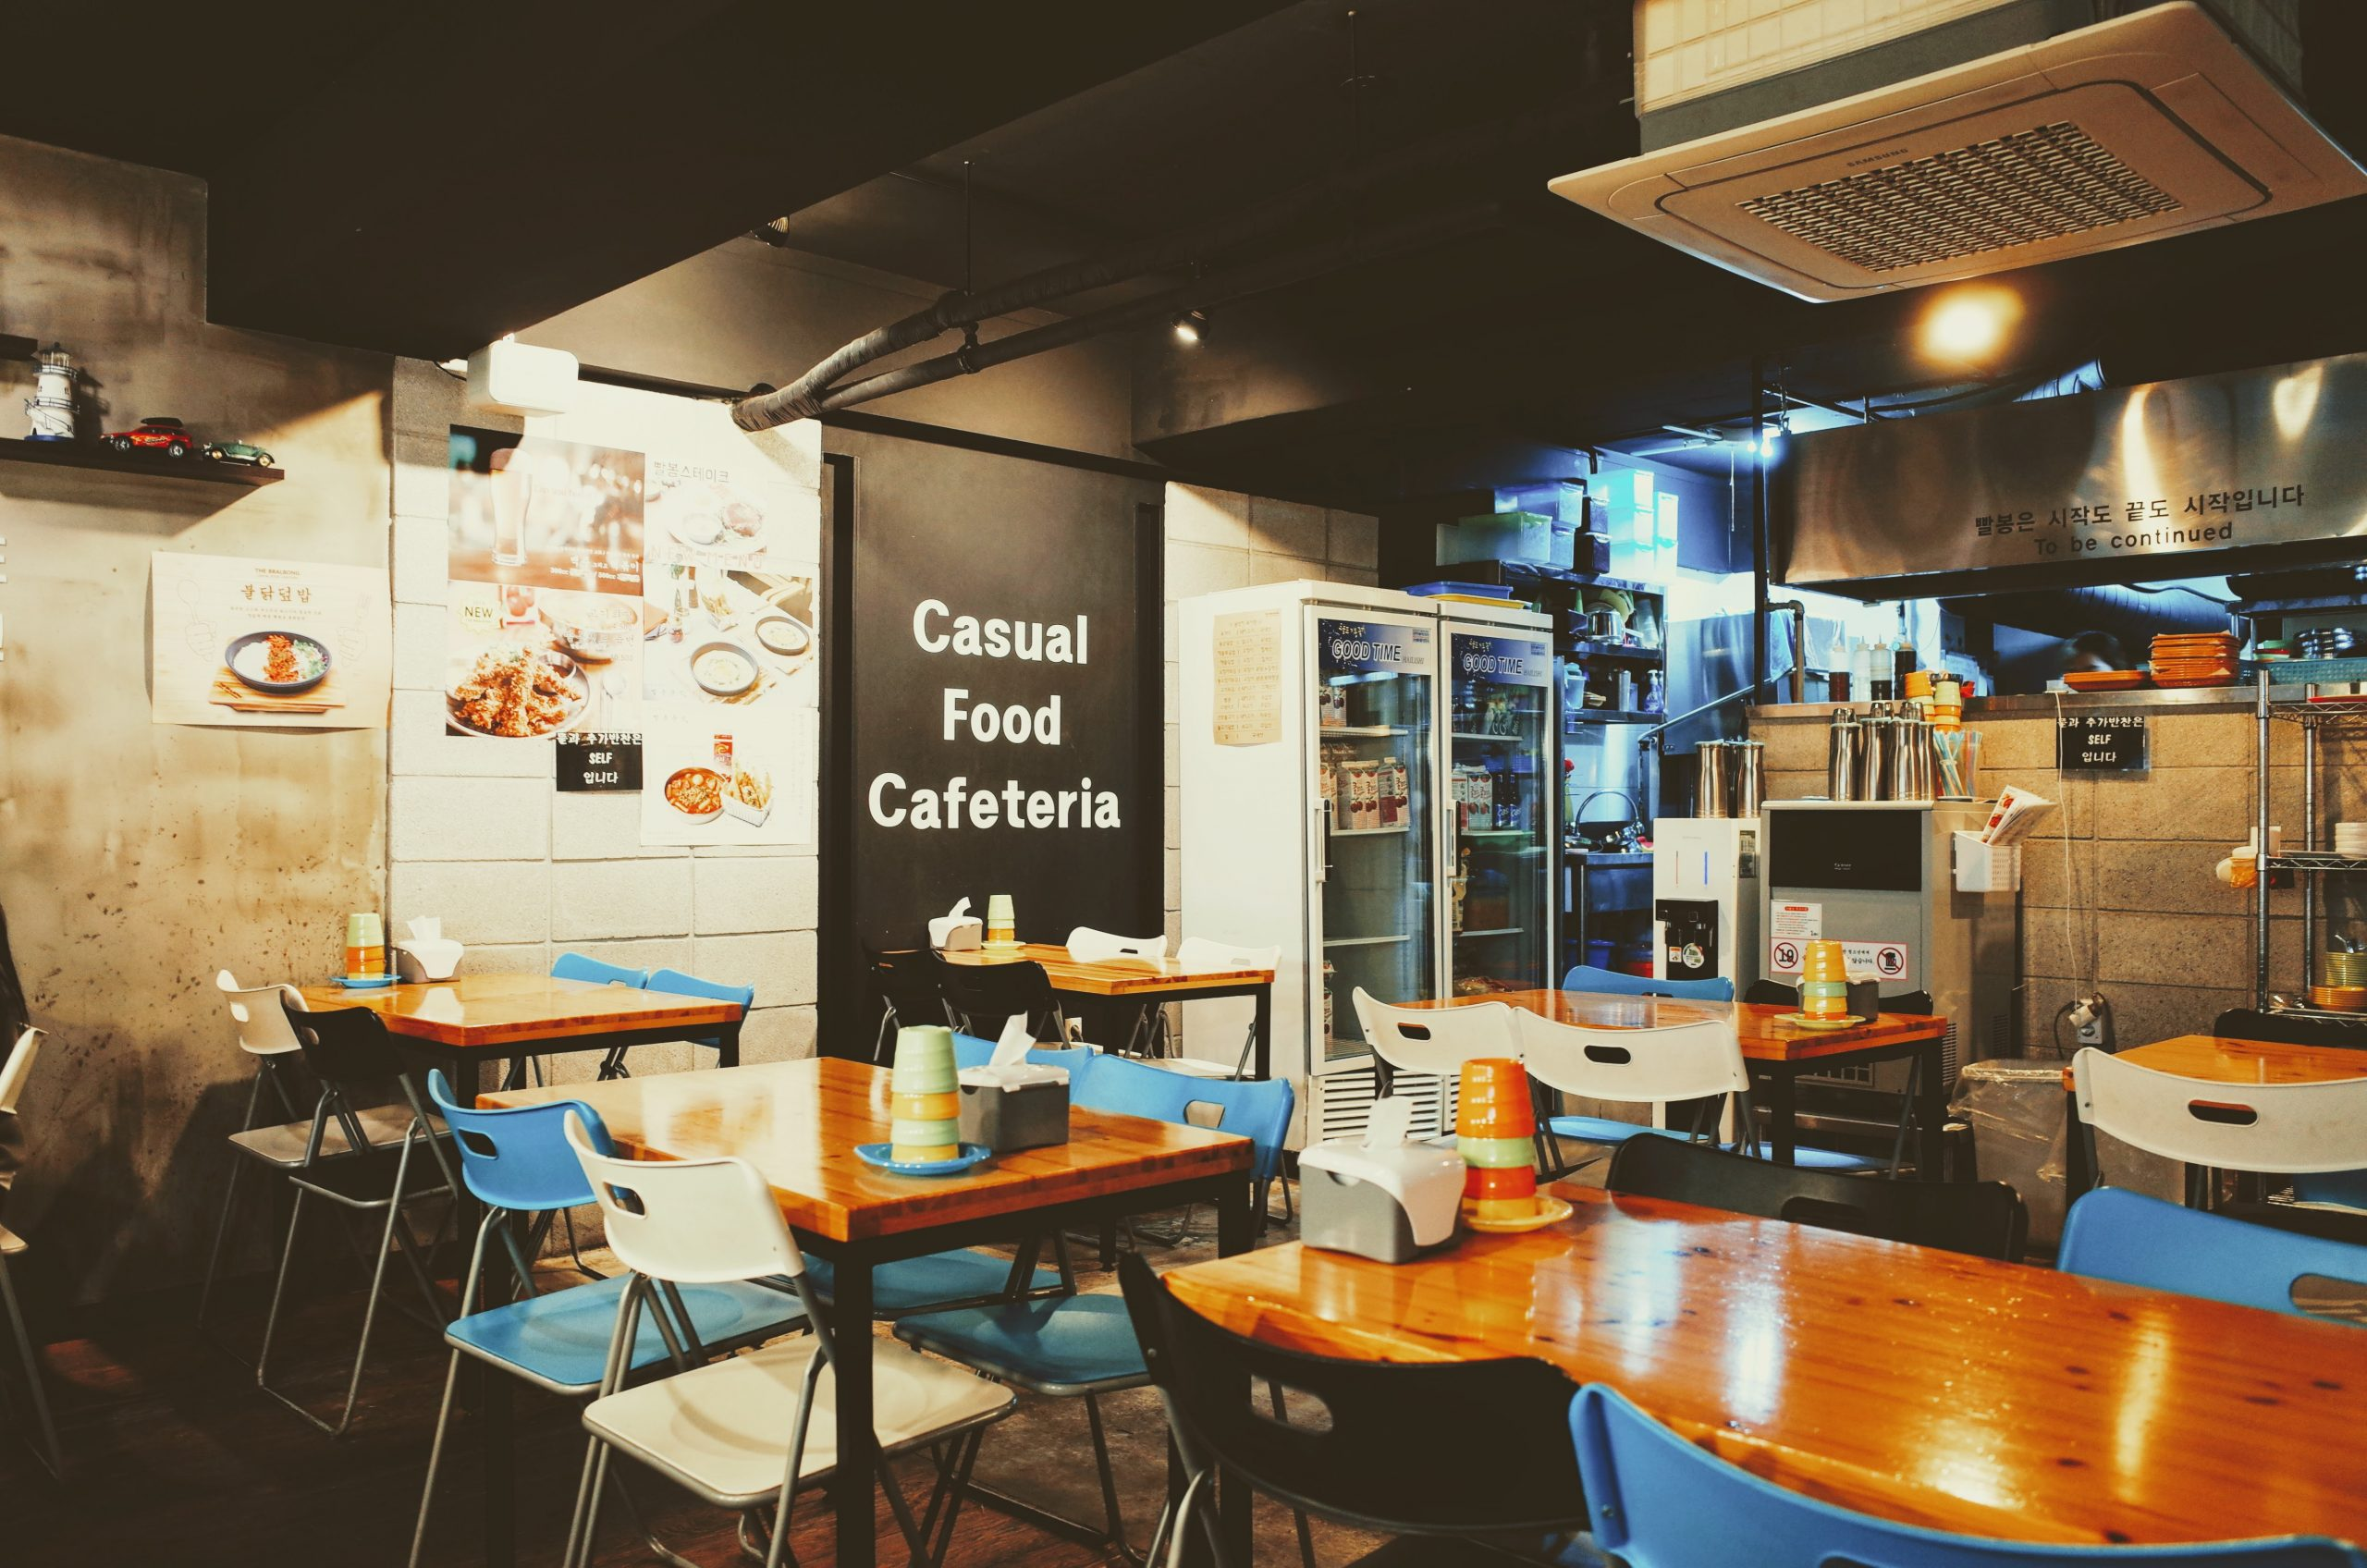 Canva - View of Empty Restaurant